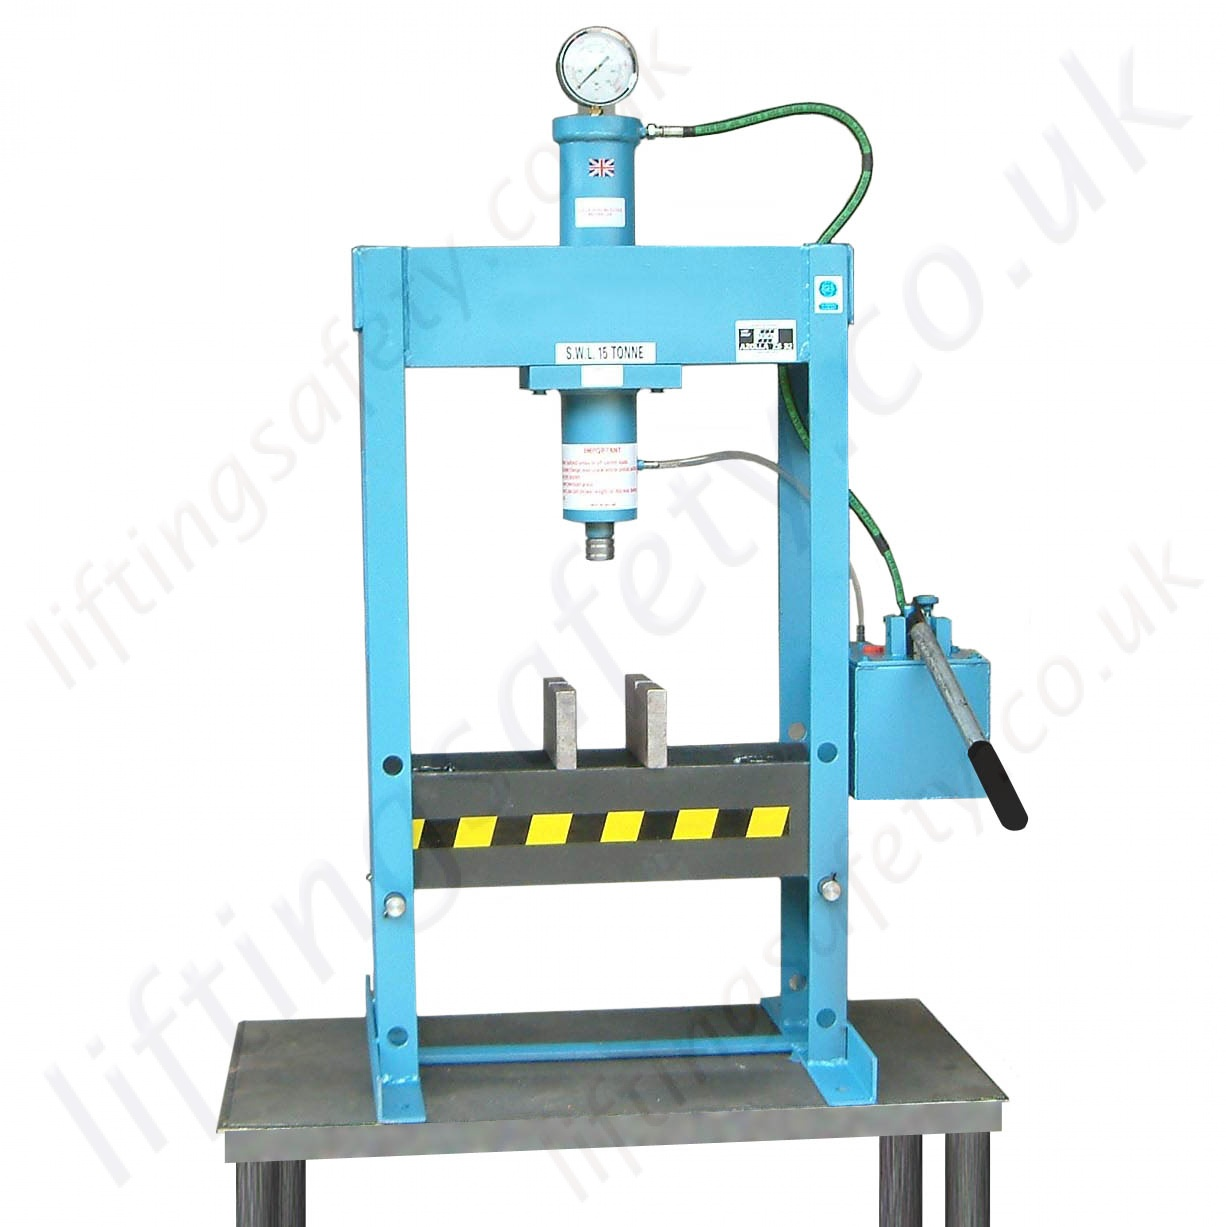 Hydraulic bench press manual hydraulic operation 12 000kg and 15 000kg liftingsafety Hydraulic bench press